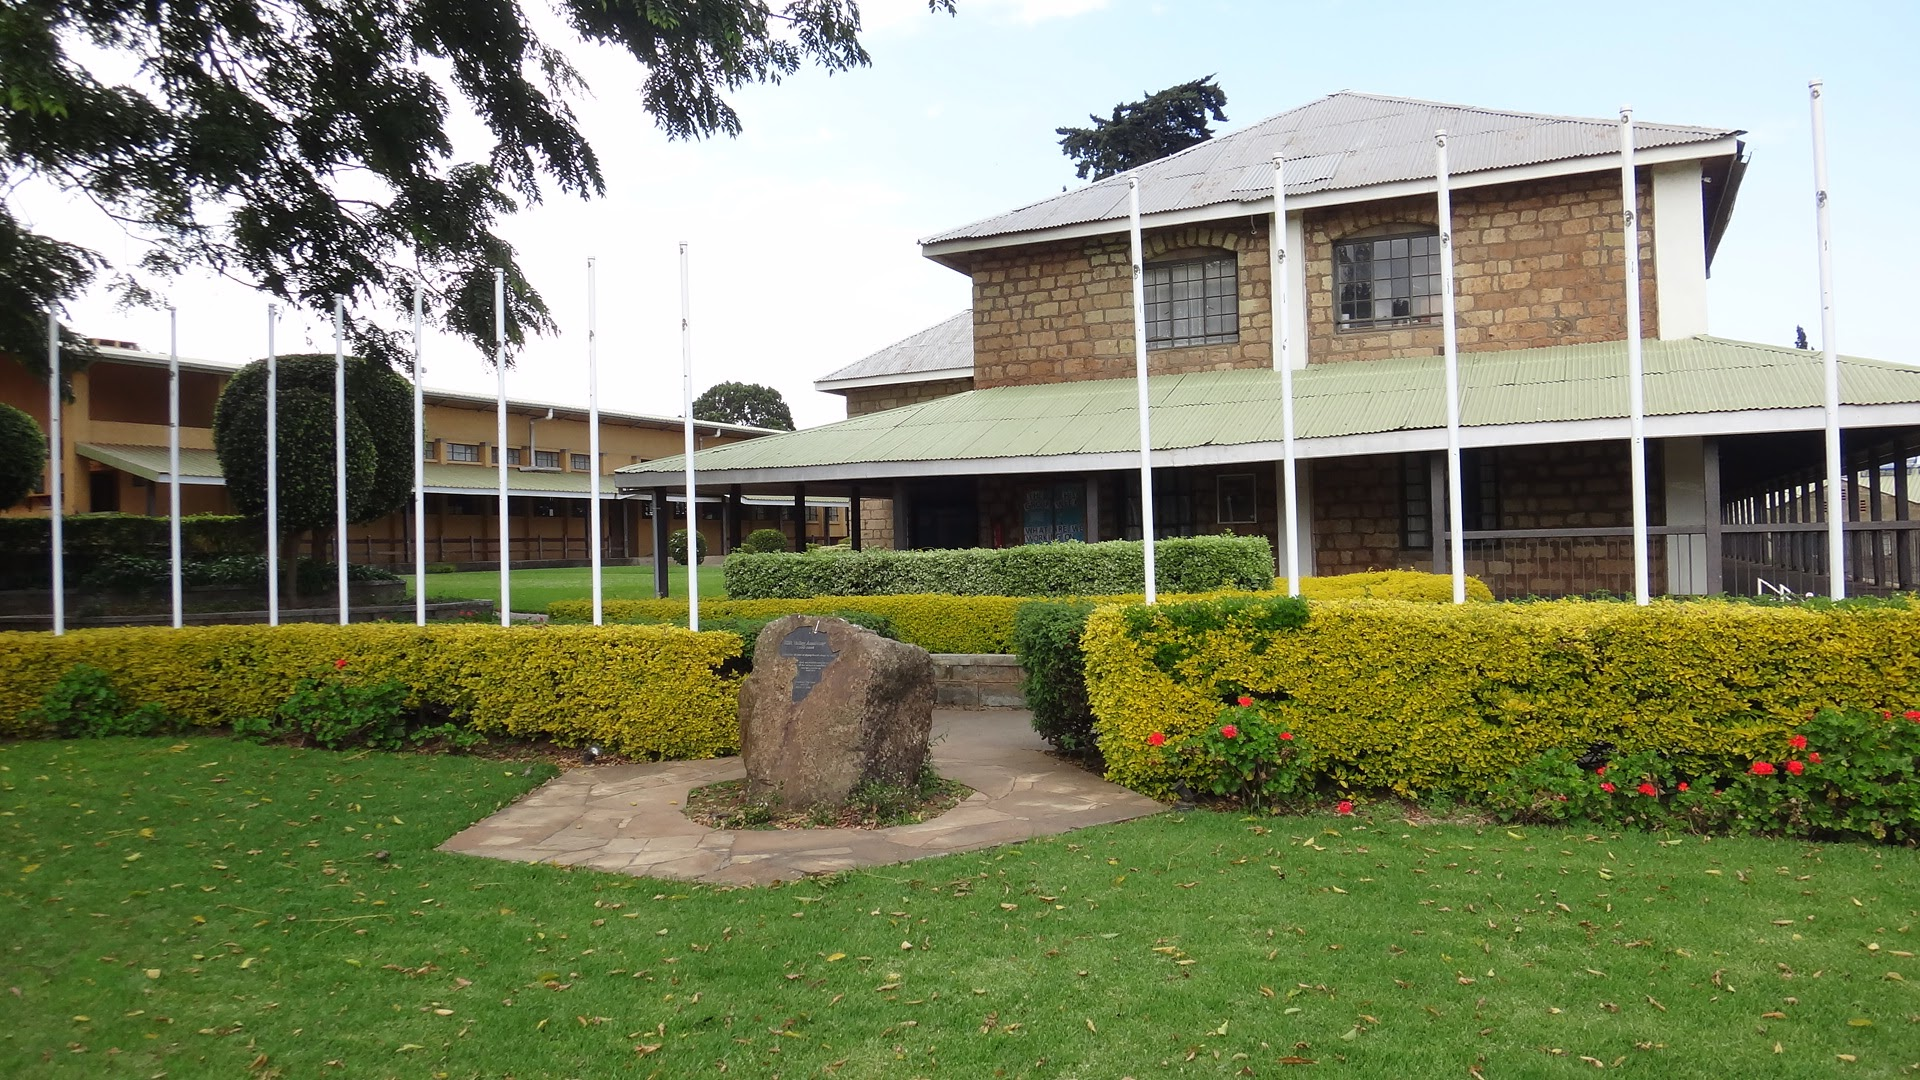 8.3Rift Valley Academy